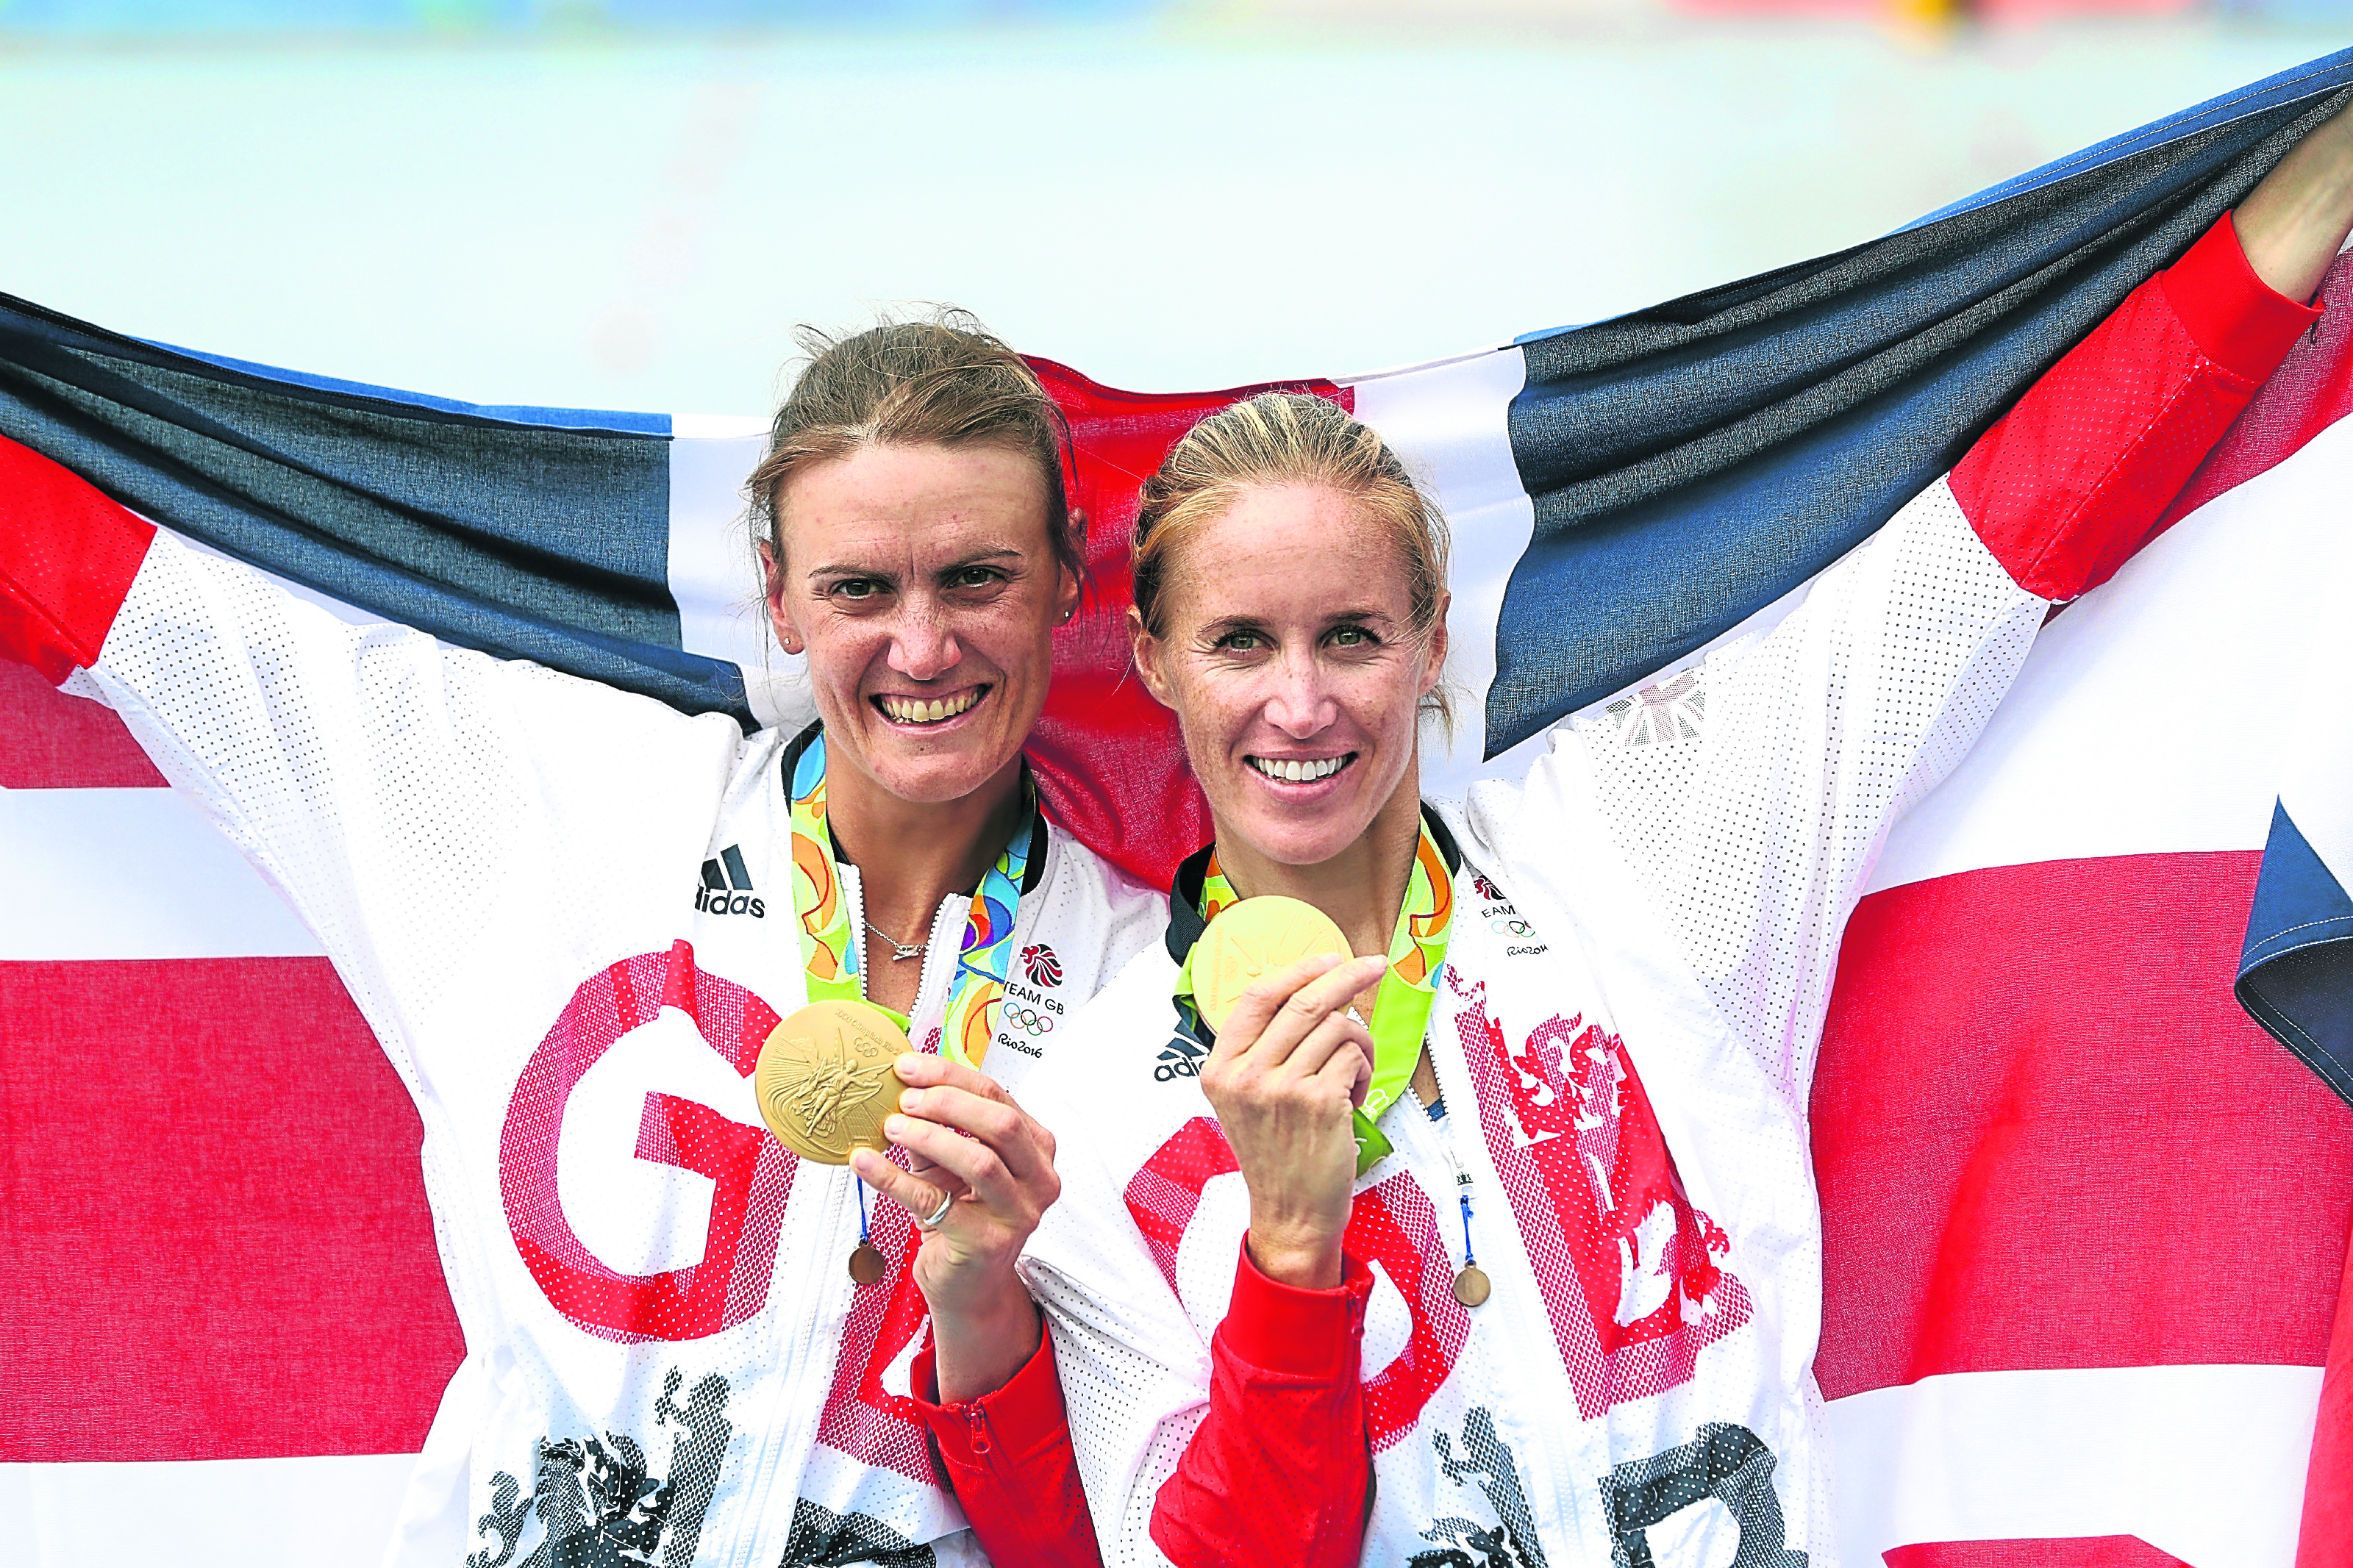 Gold medallists Helen Glover (R) and Heather Stanning (L) of Great Britain (Photo by Ezra Shaw/Getty Images)